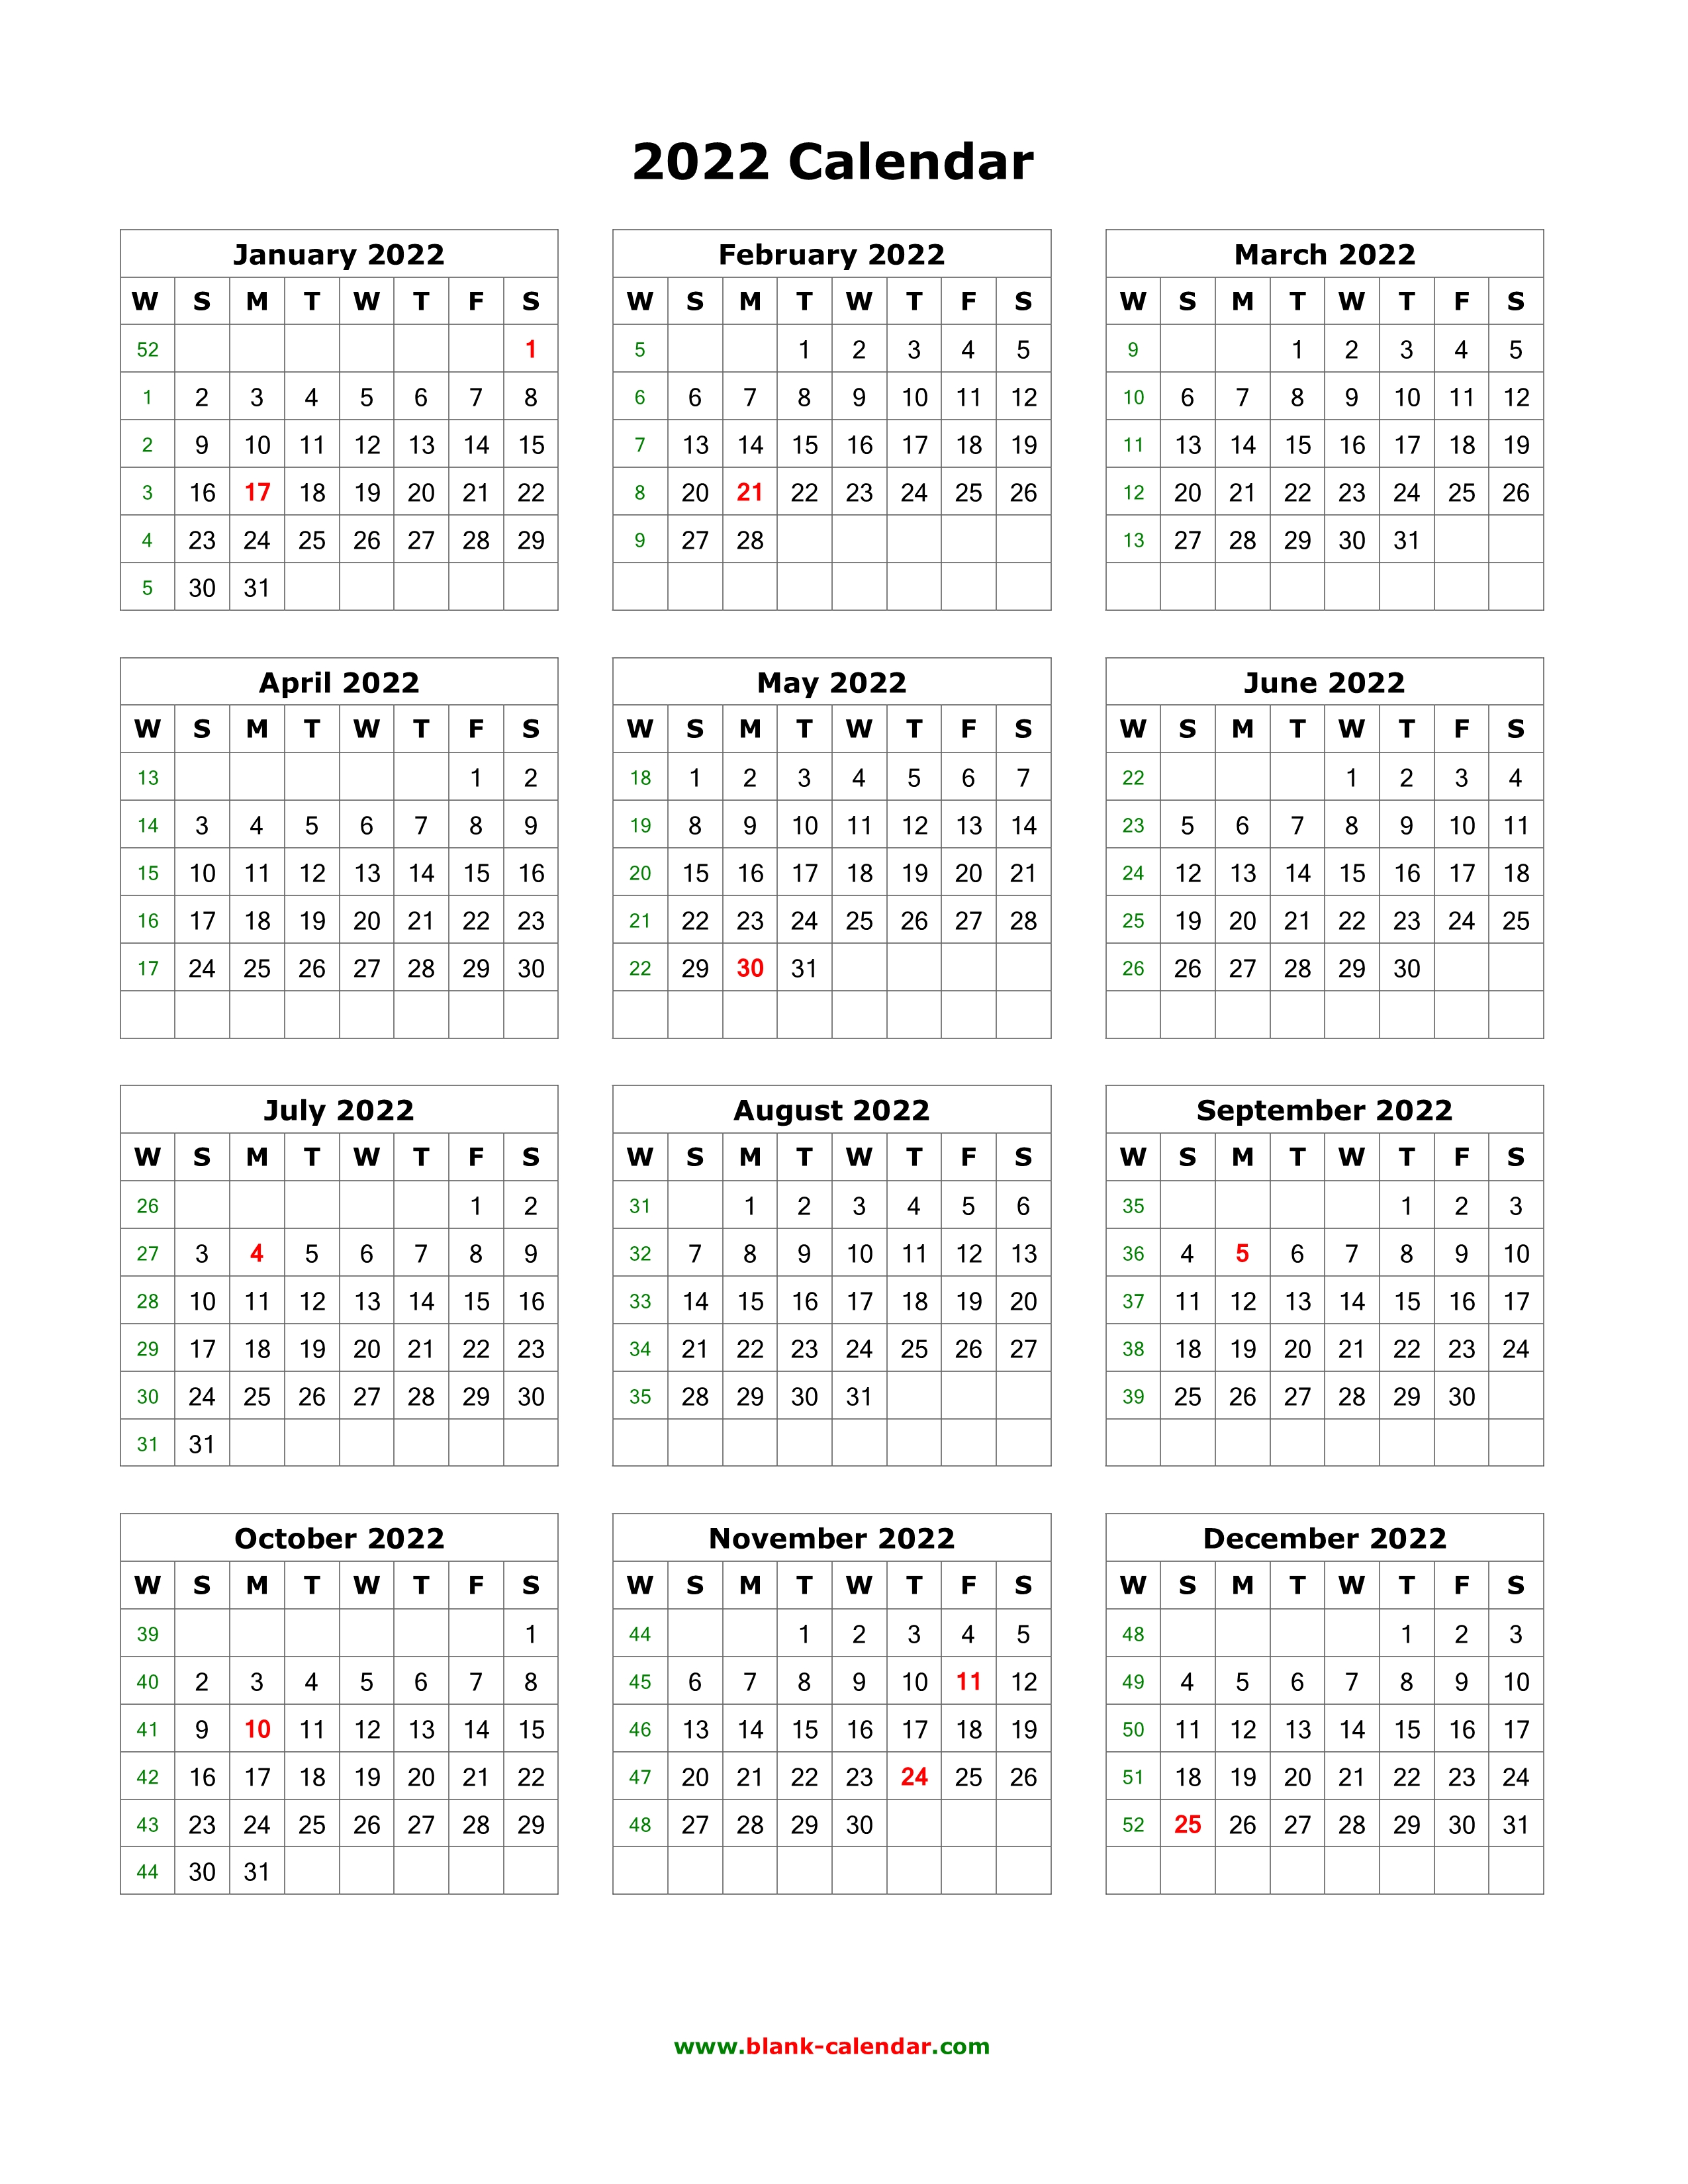 2022 One Page Calendar.Download Blank Calendar 2022 12 Months On One Page Vertical